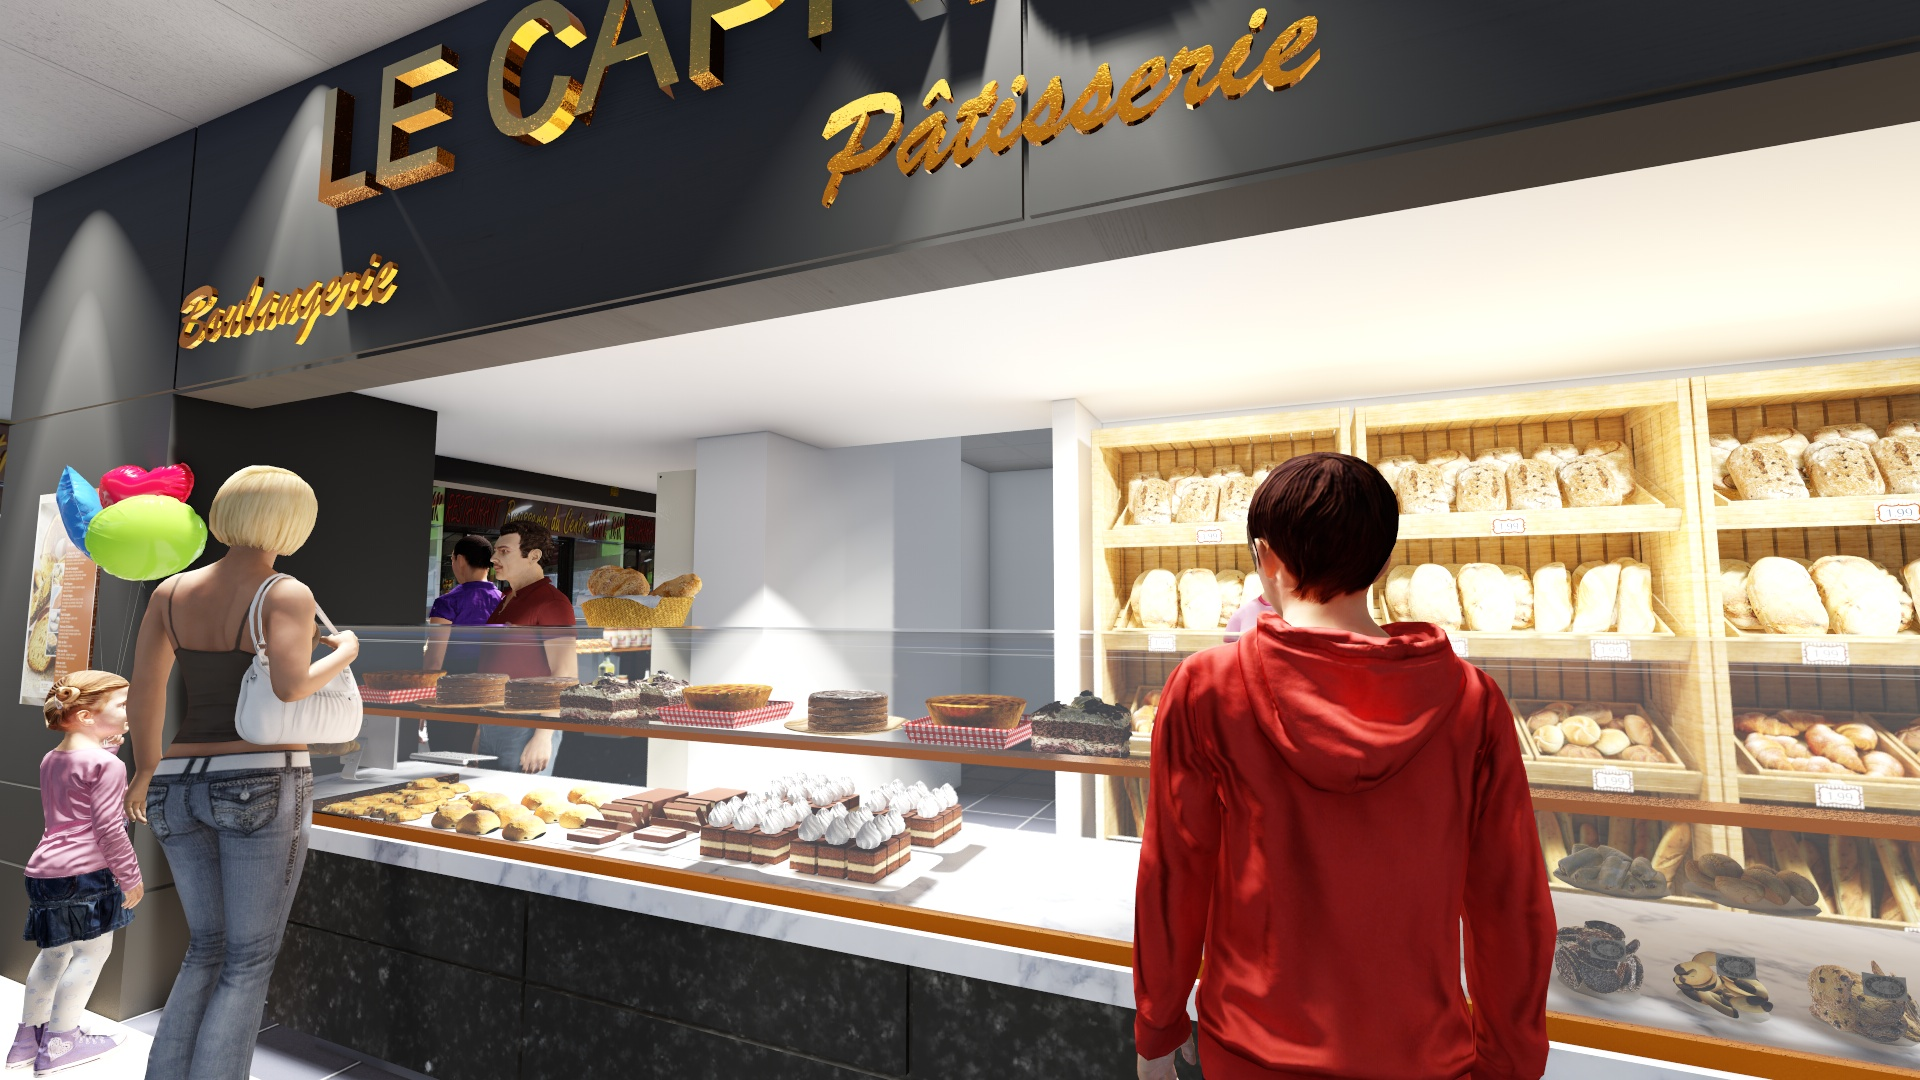 Alpha_Architecture_Boulangerie_Caprice_Or_Image_04